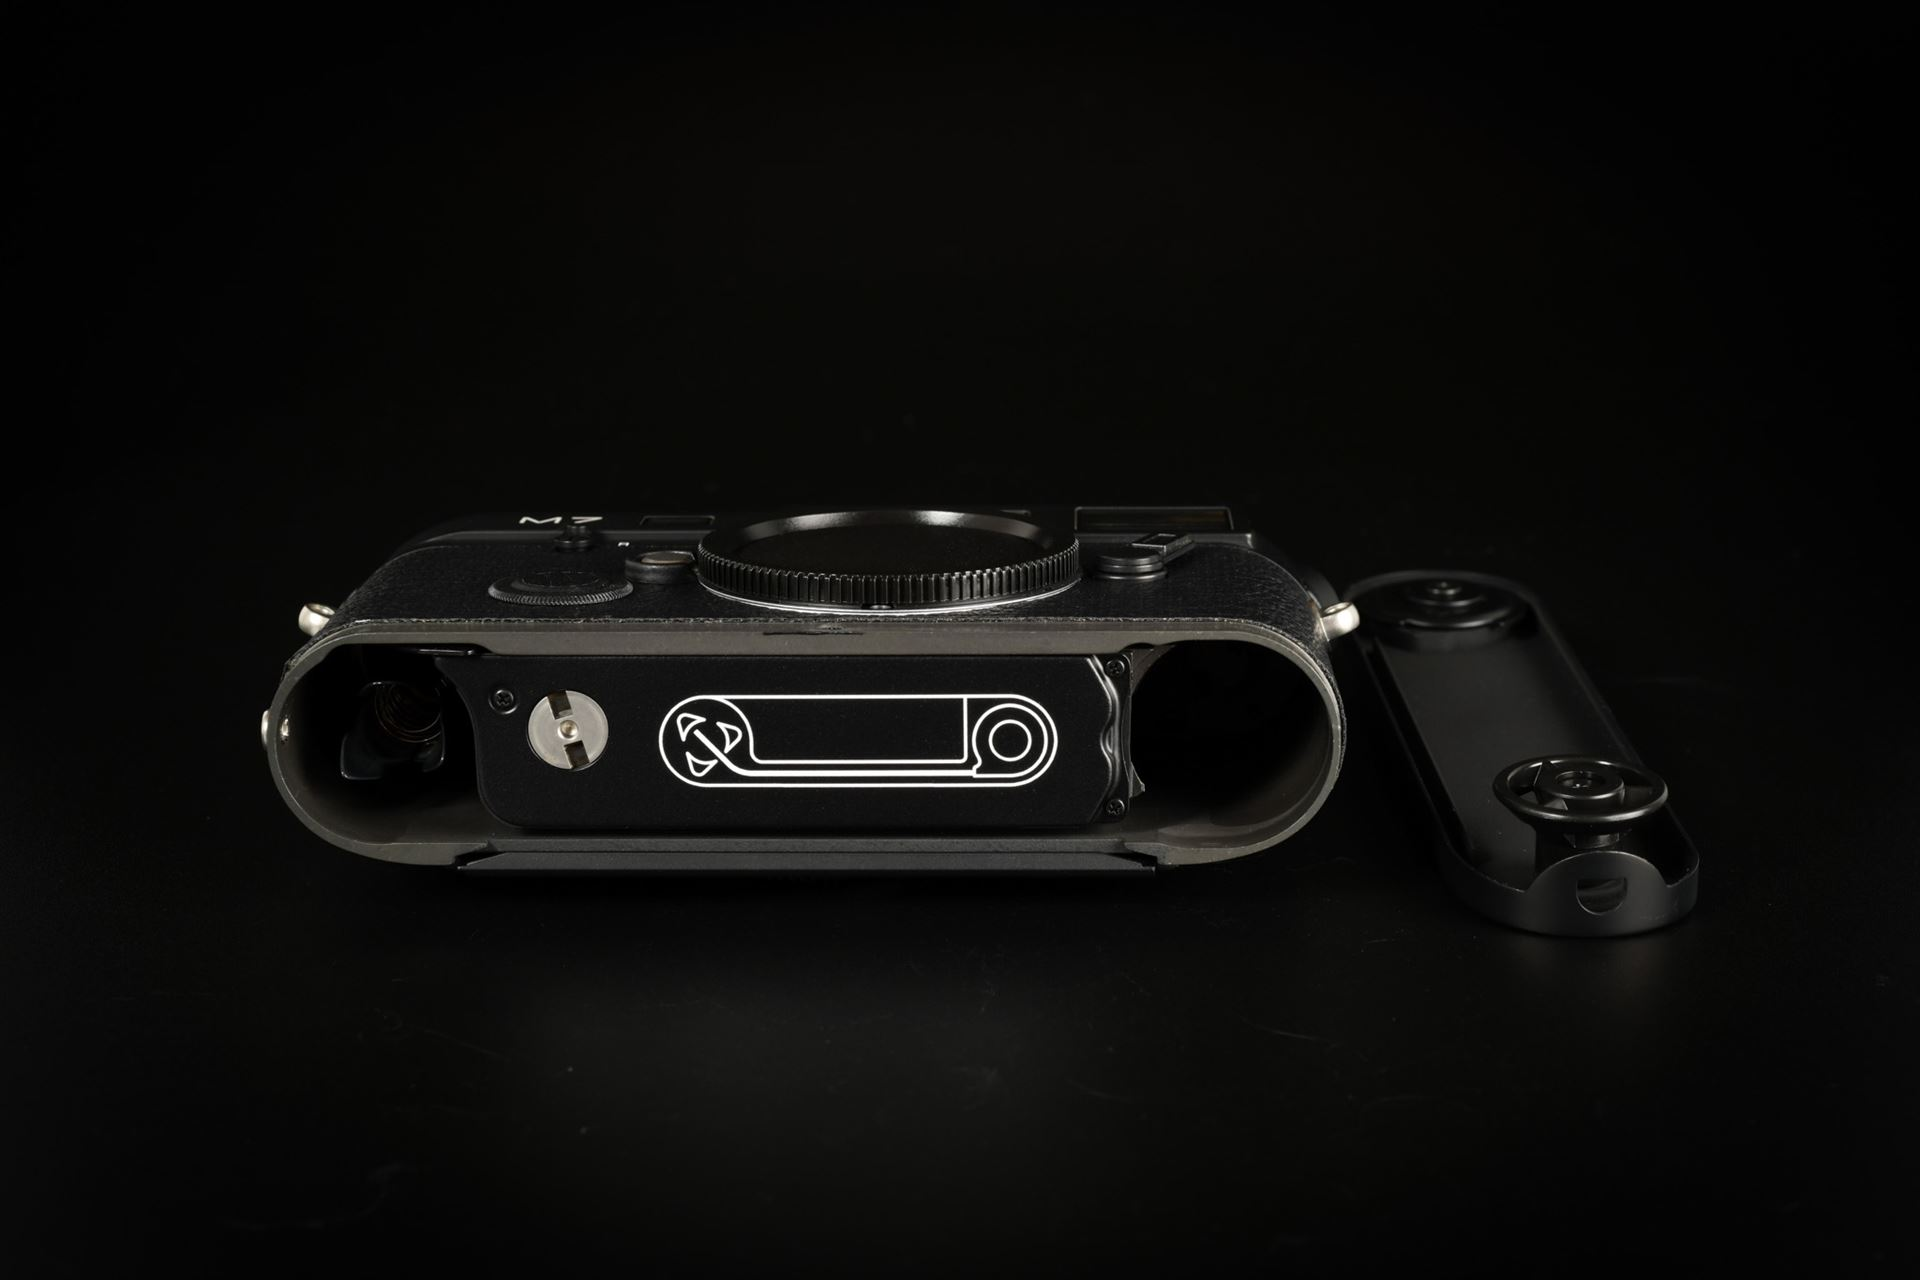 Picture of Leica M7 0.72 Black Chrome